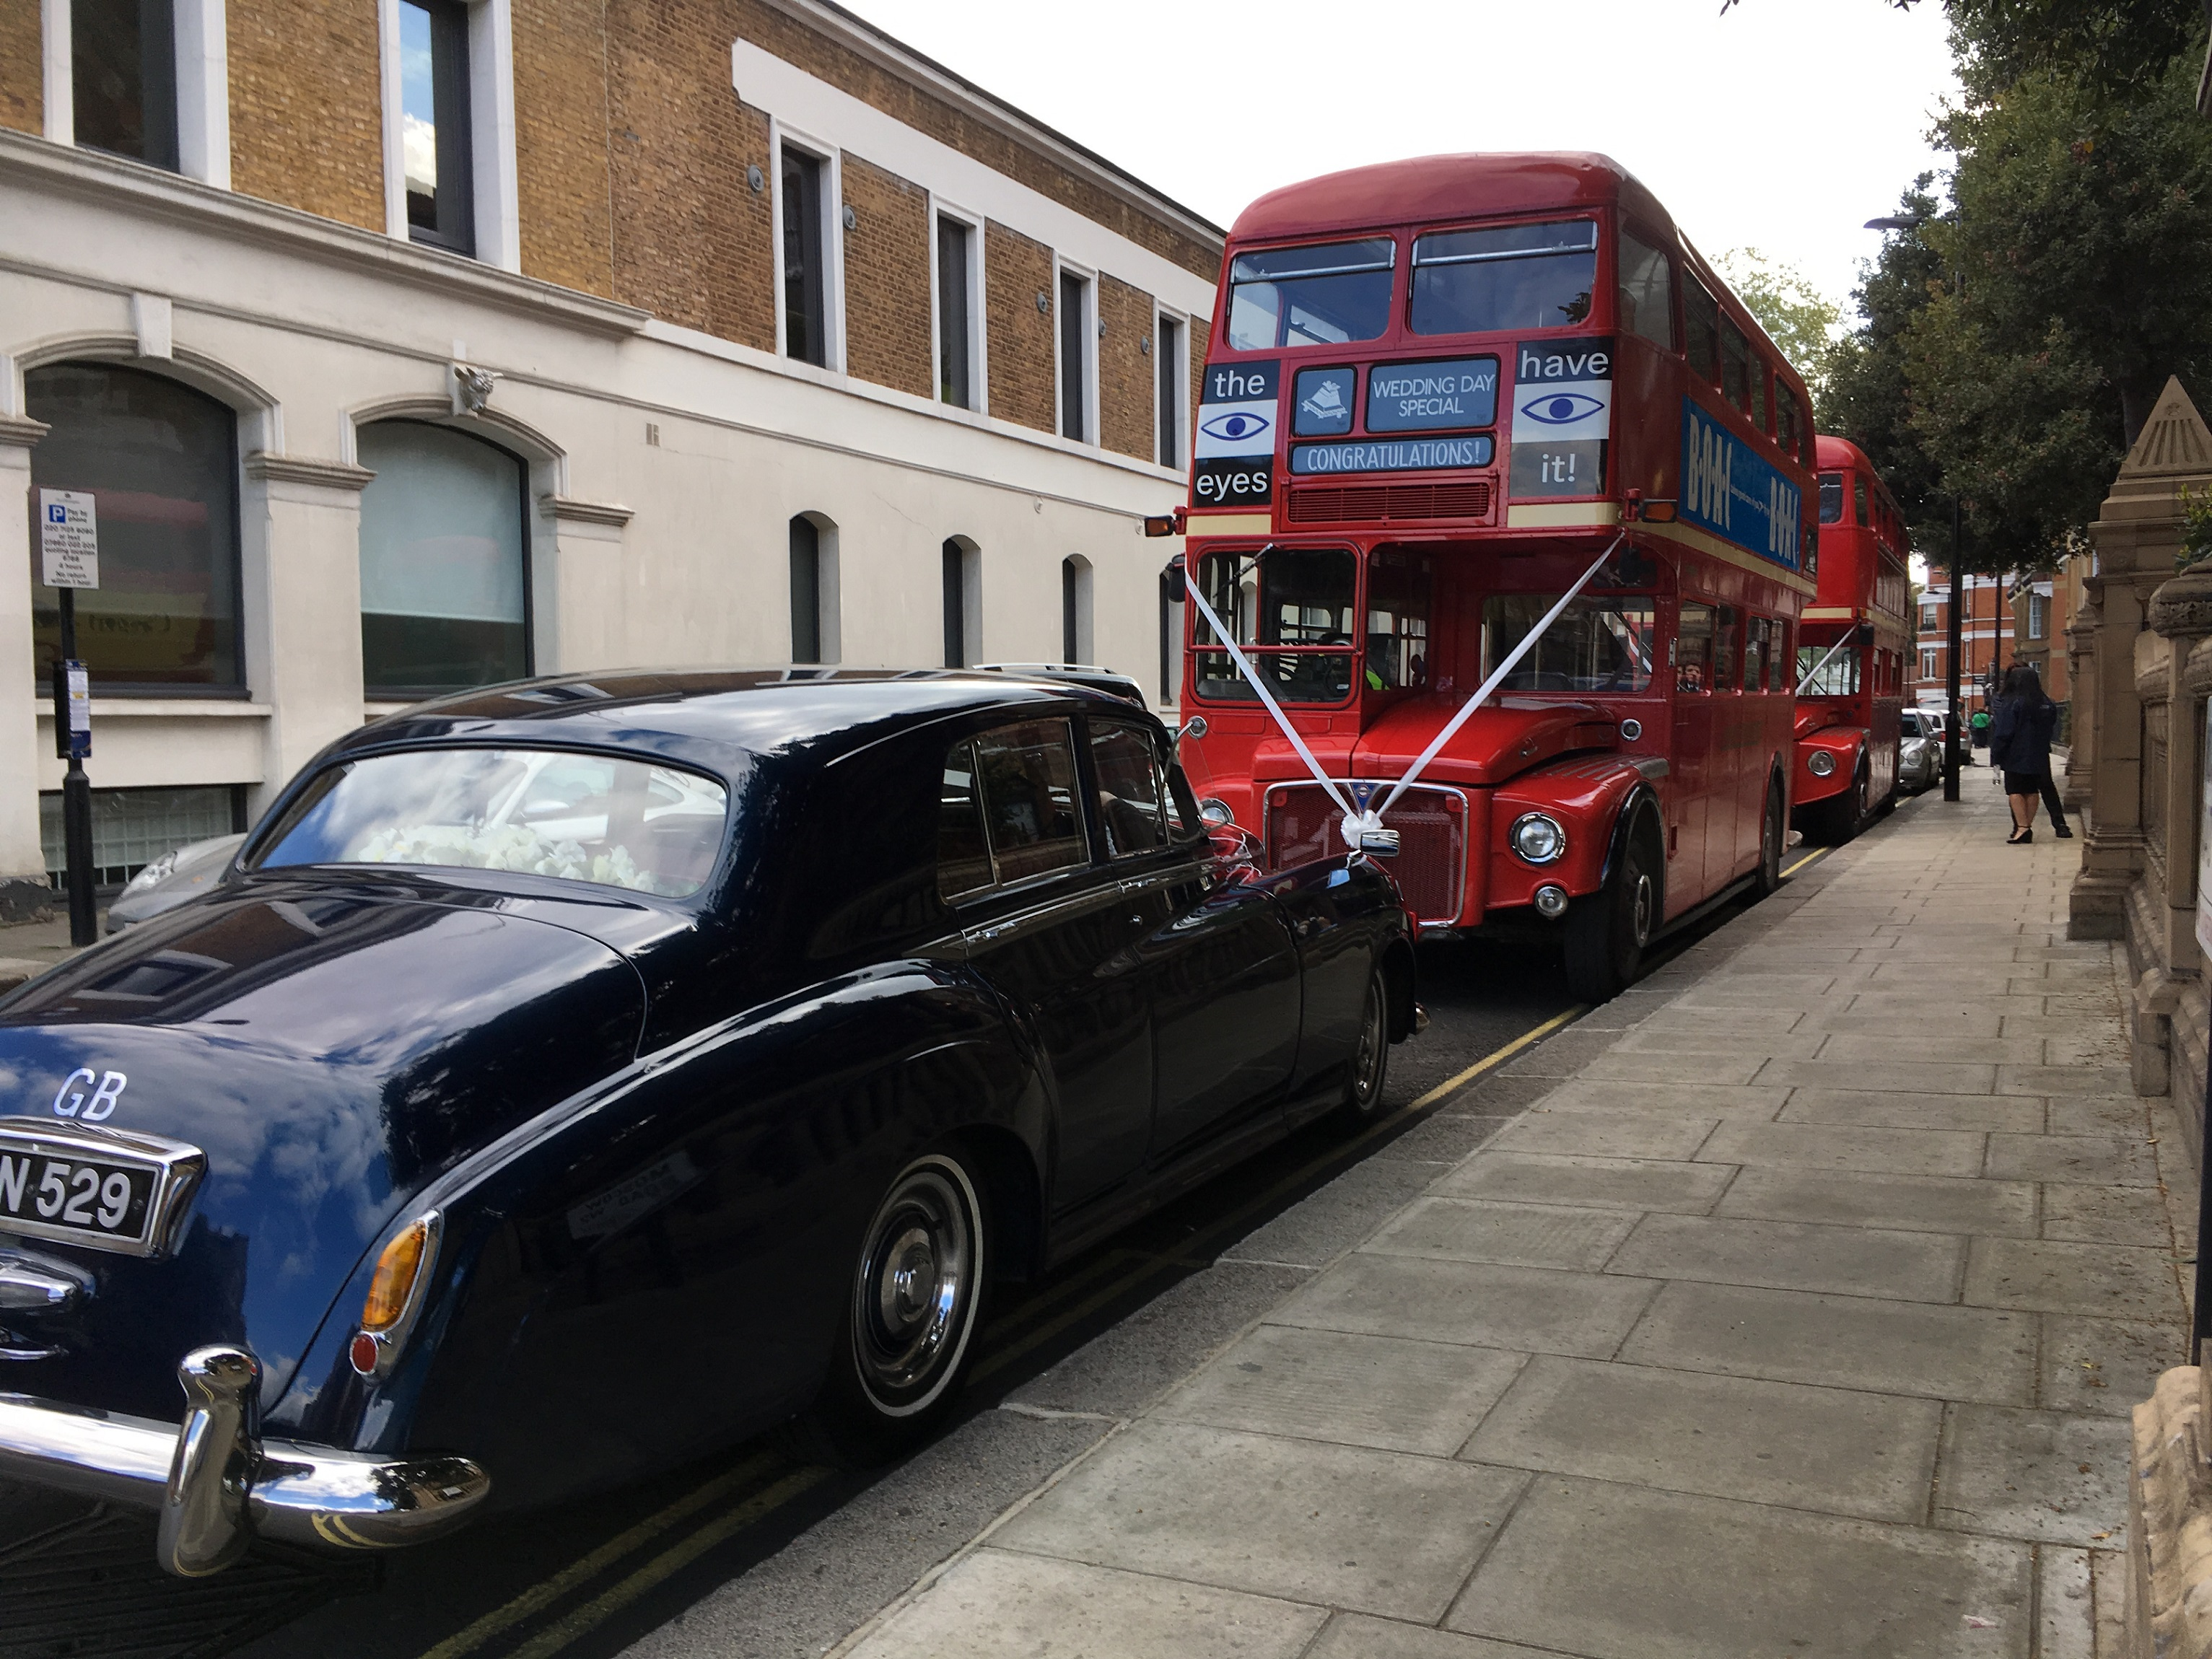 St. Sophia Greek Cathedral wedding bus